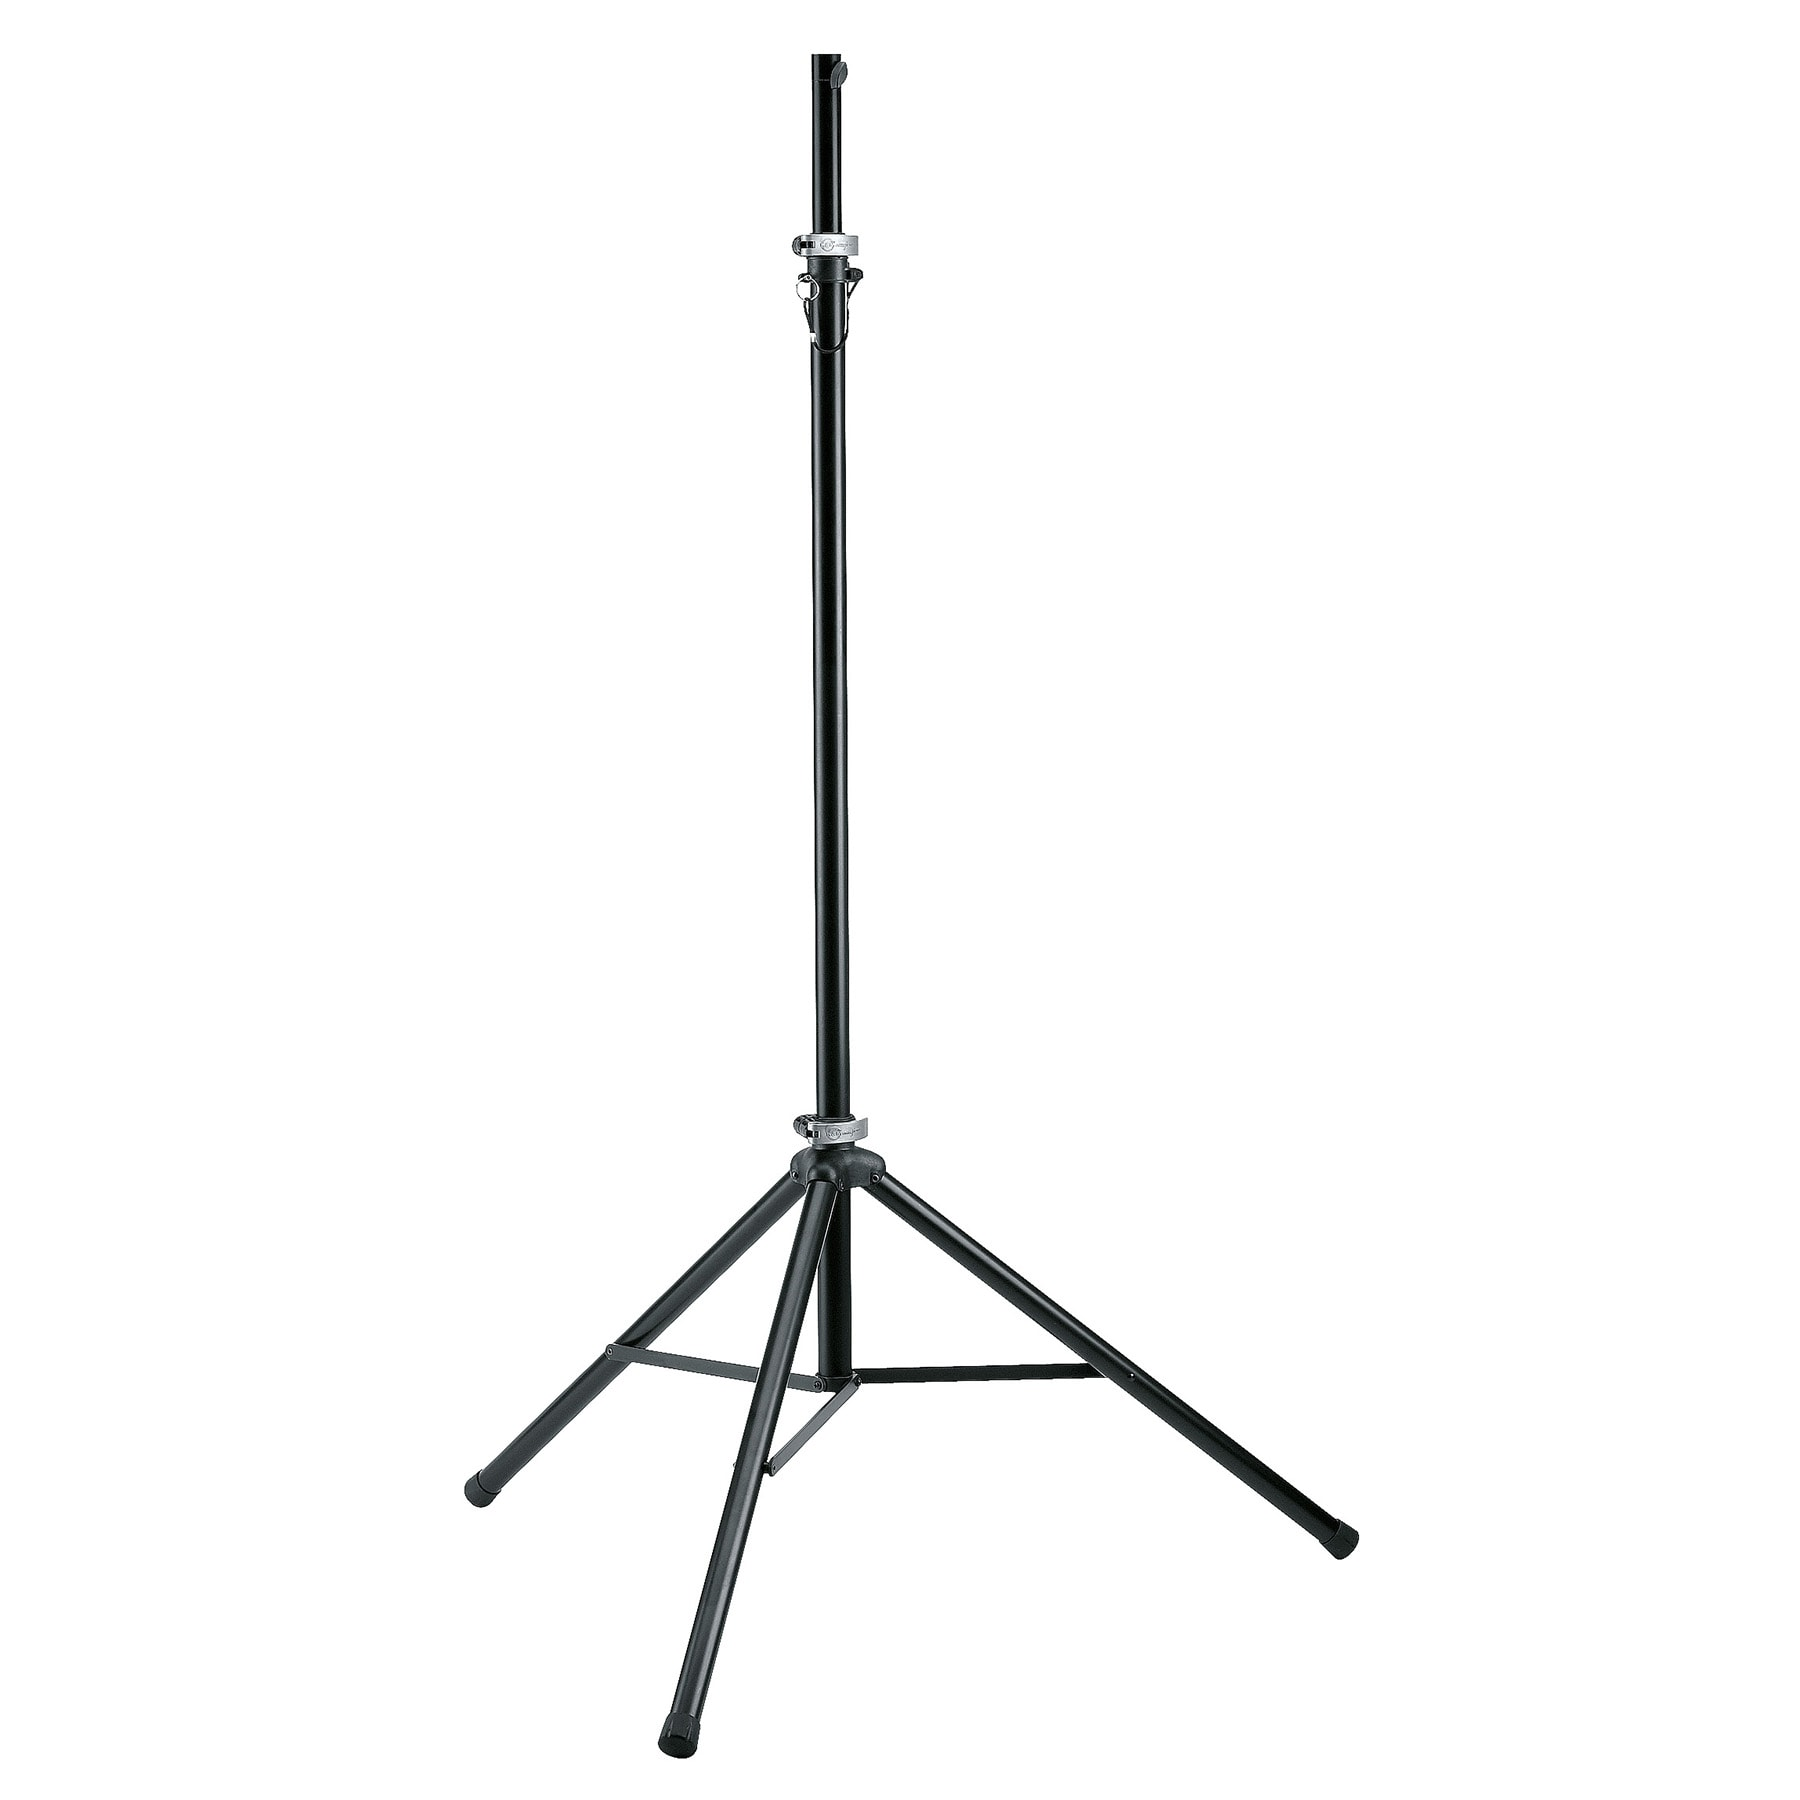 KM24625 - Lighting stand